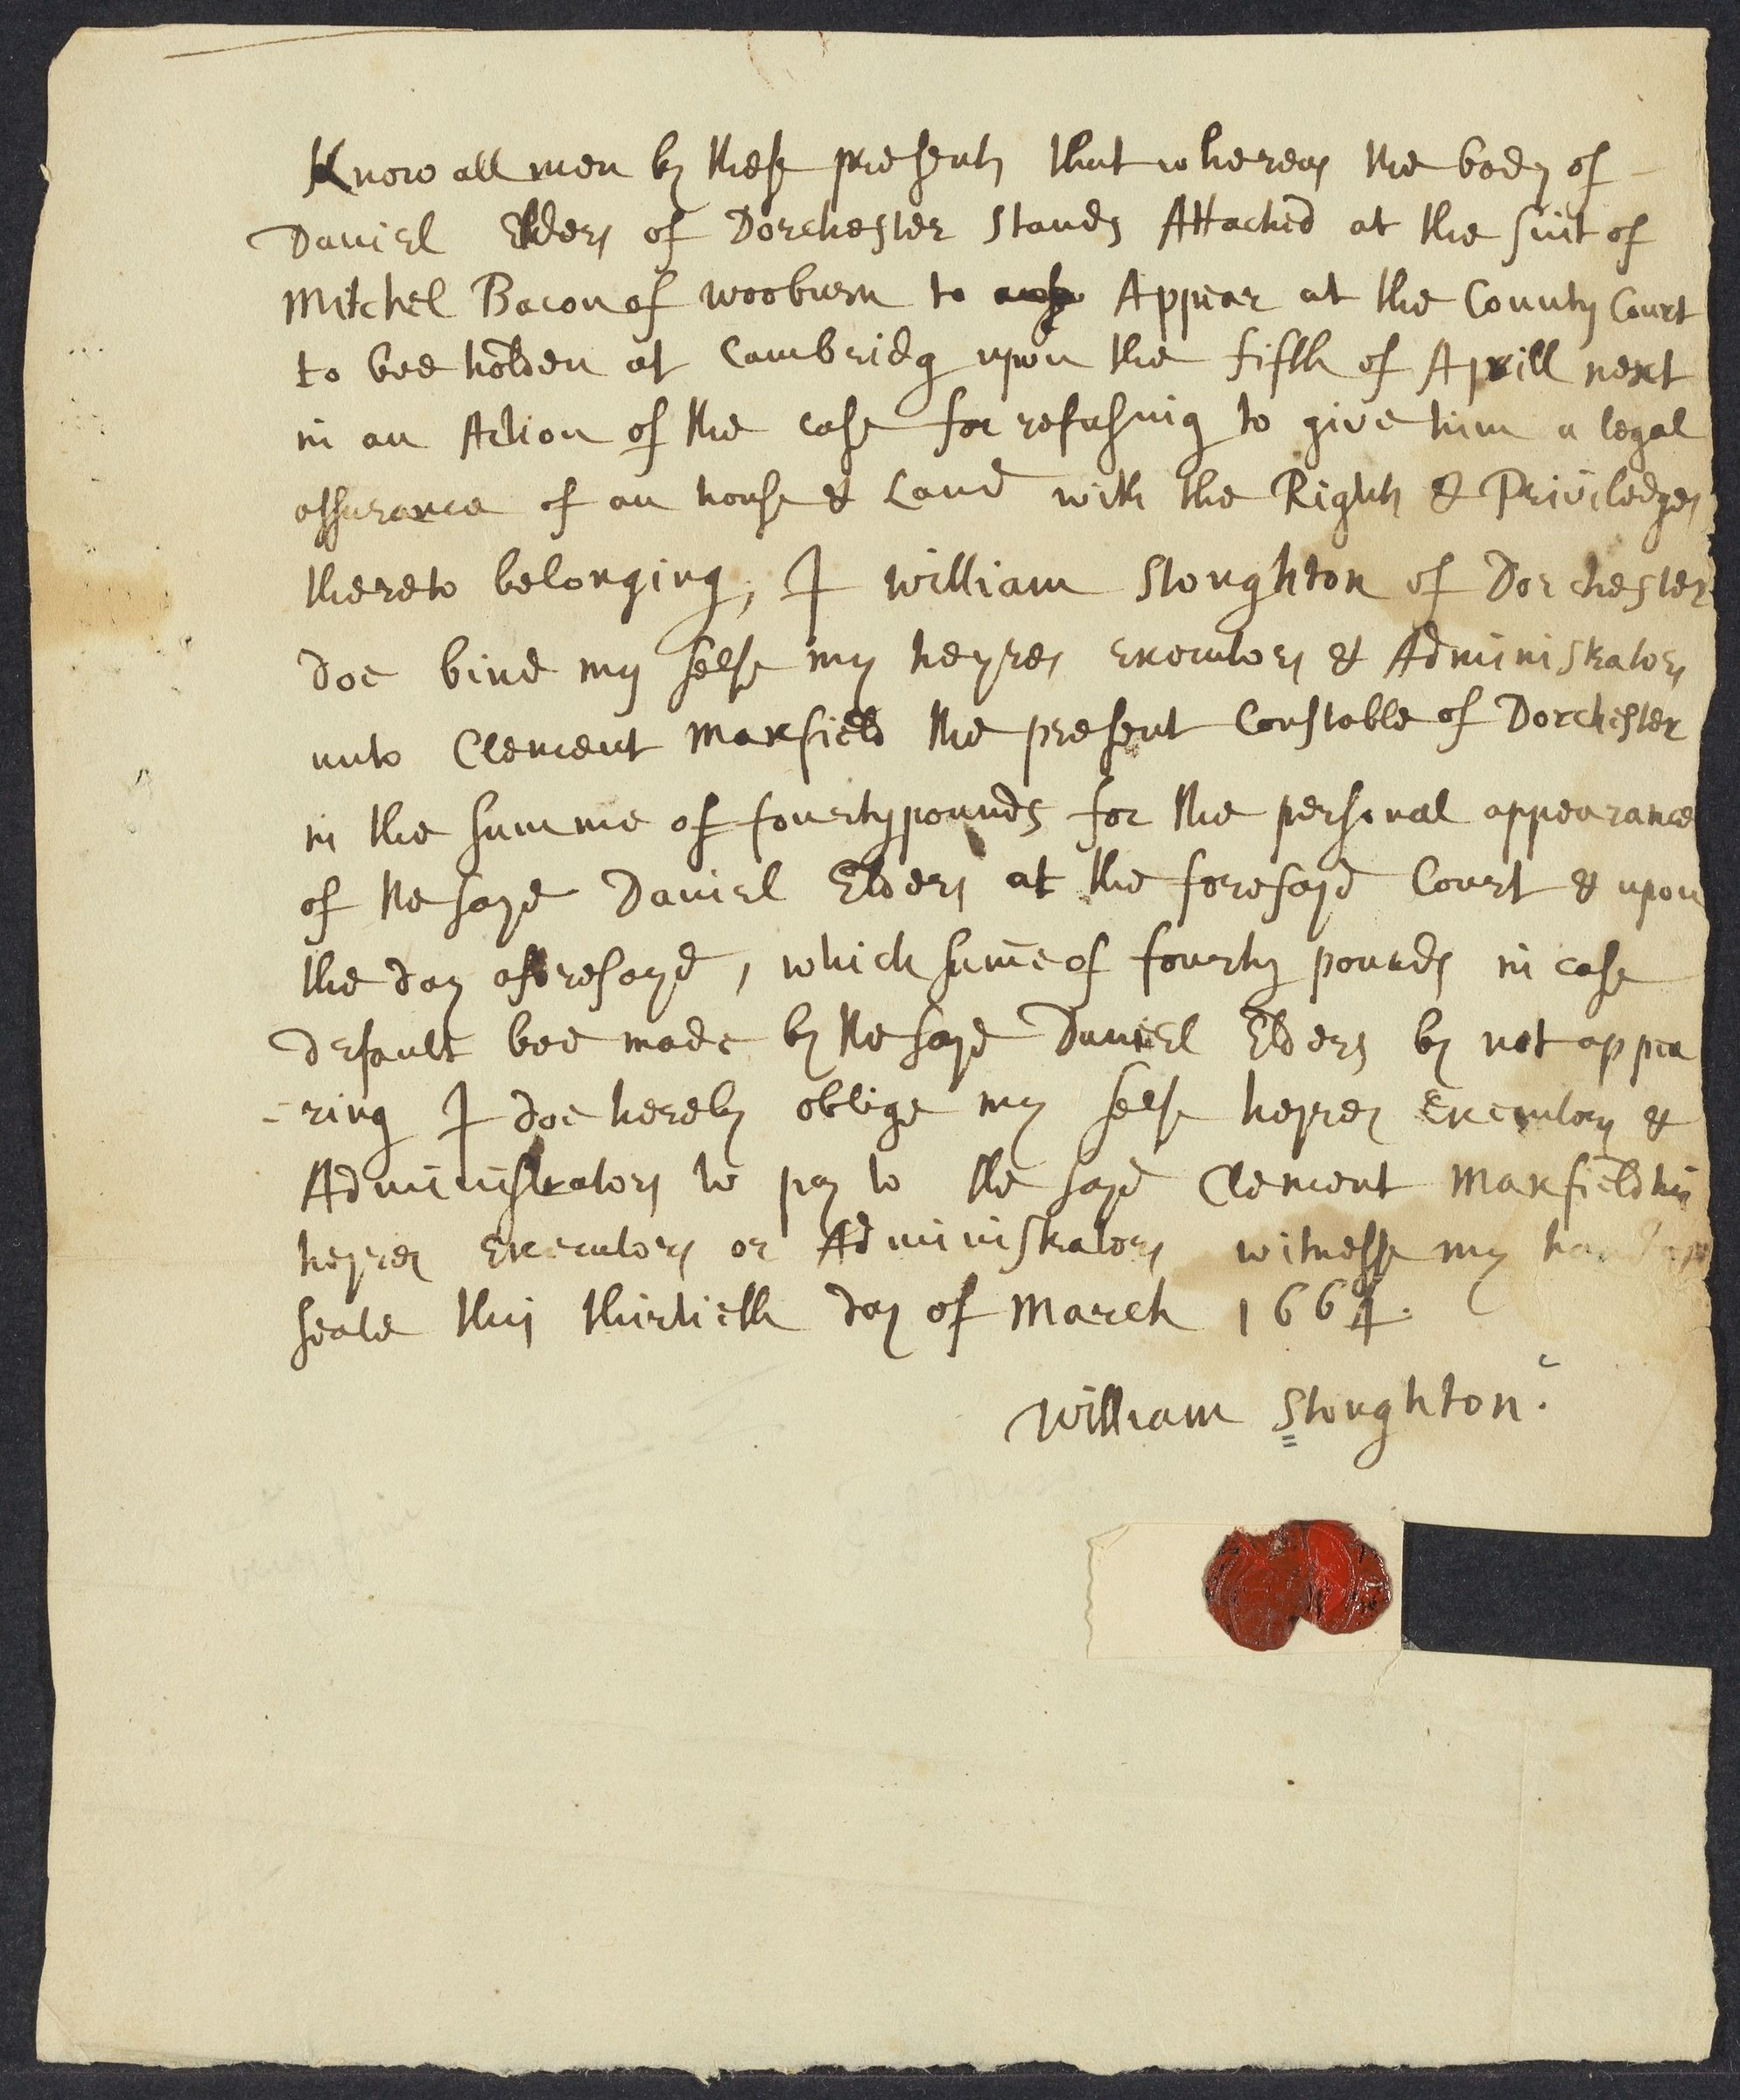 Bond to Clement Maxfield, 30 March 1664